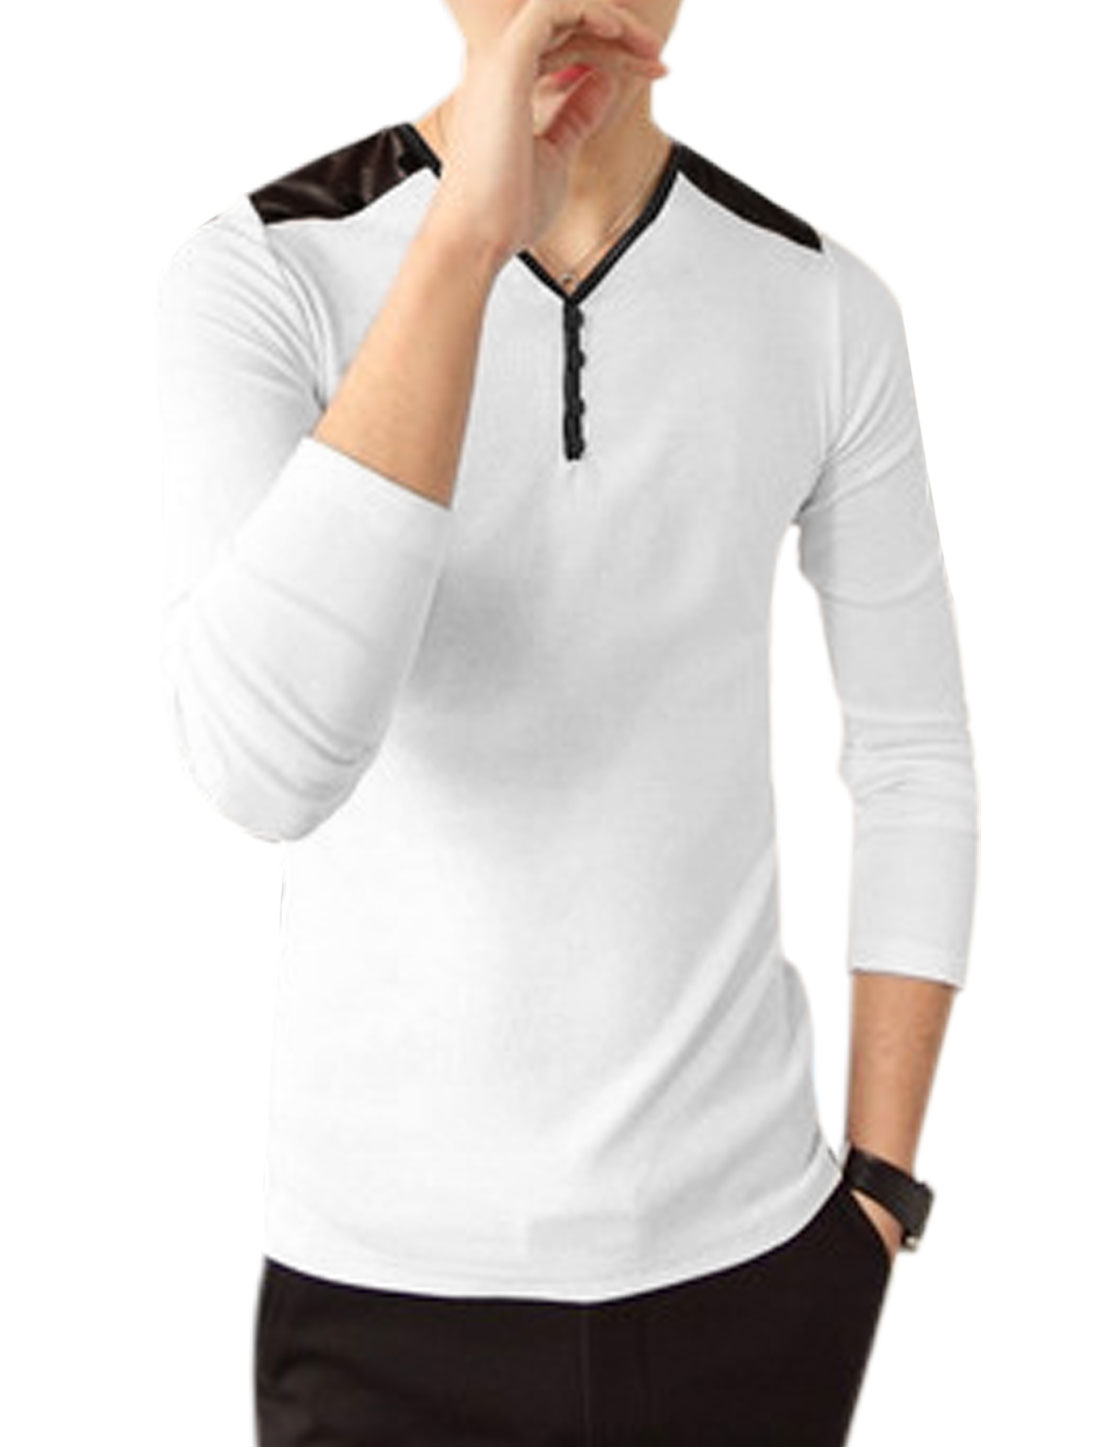 Men Long Sleeves PU Patched Design Contrast Shoulder Casual Knit Top White S